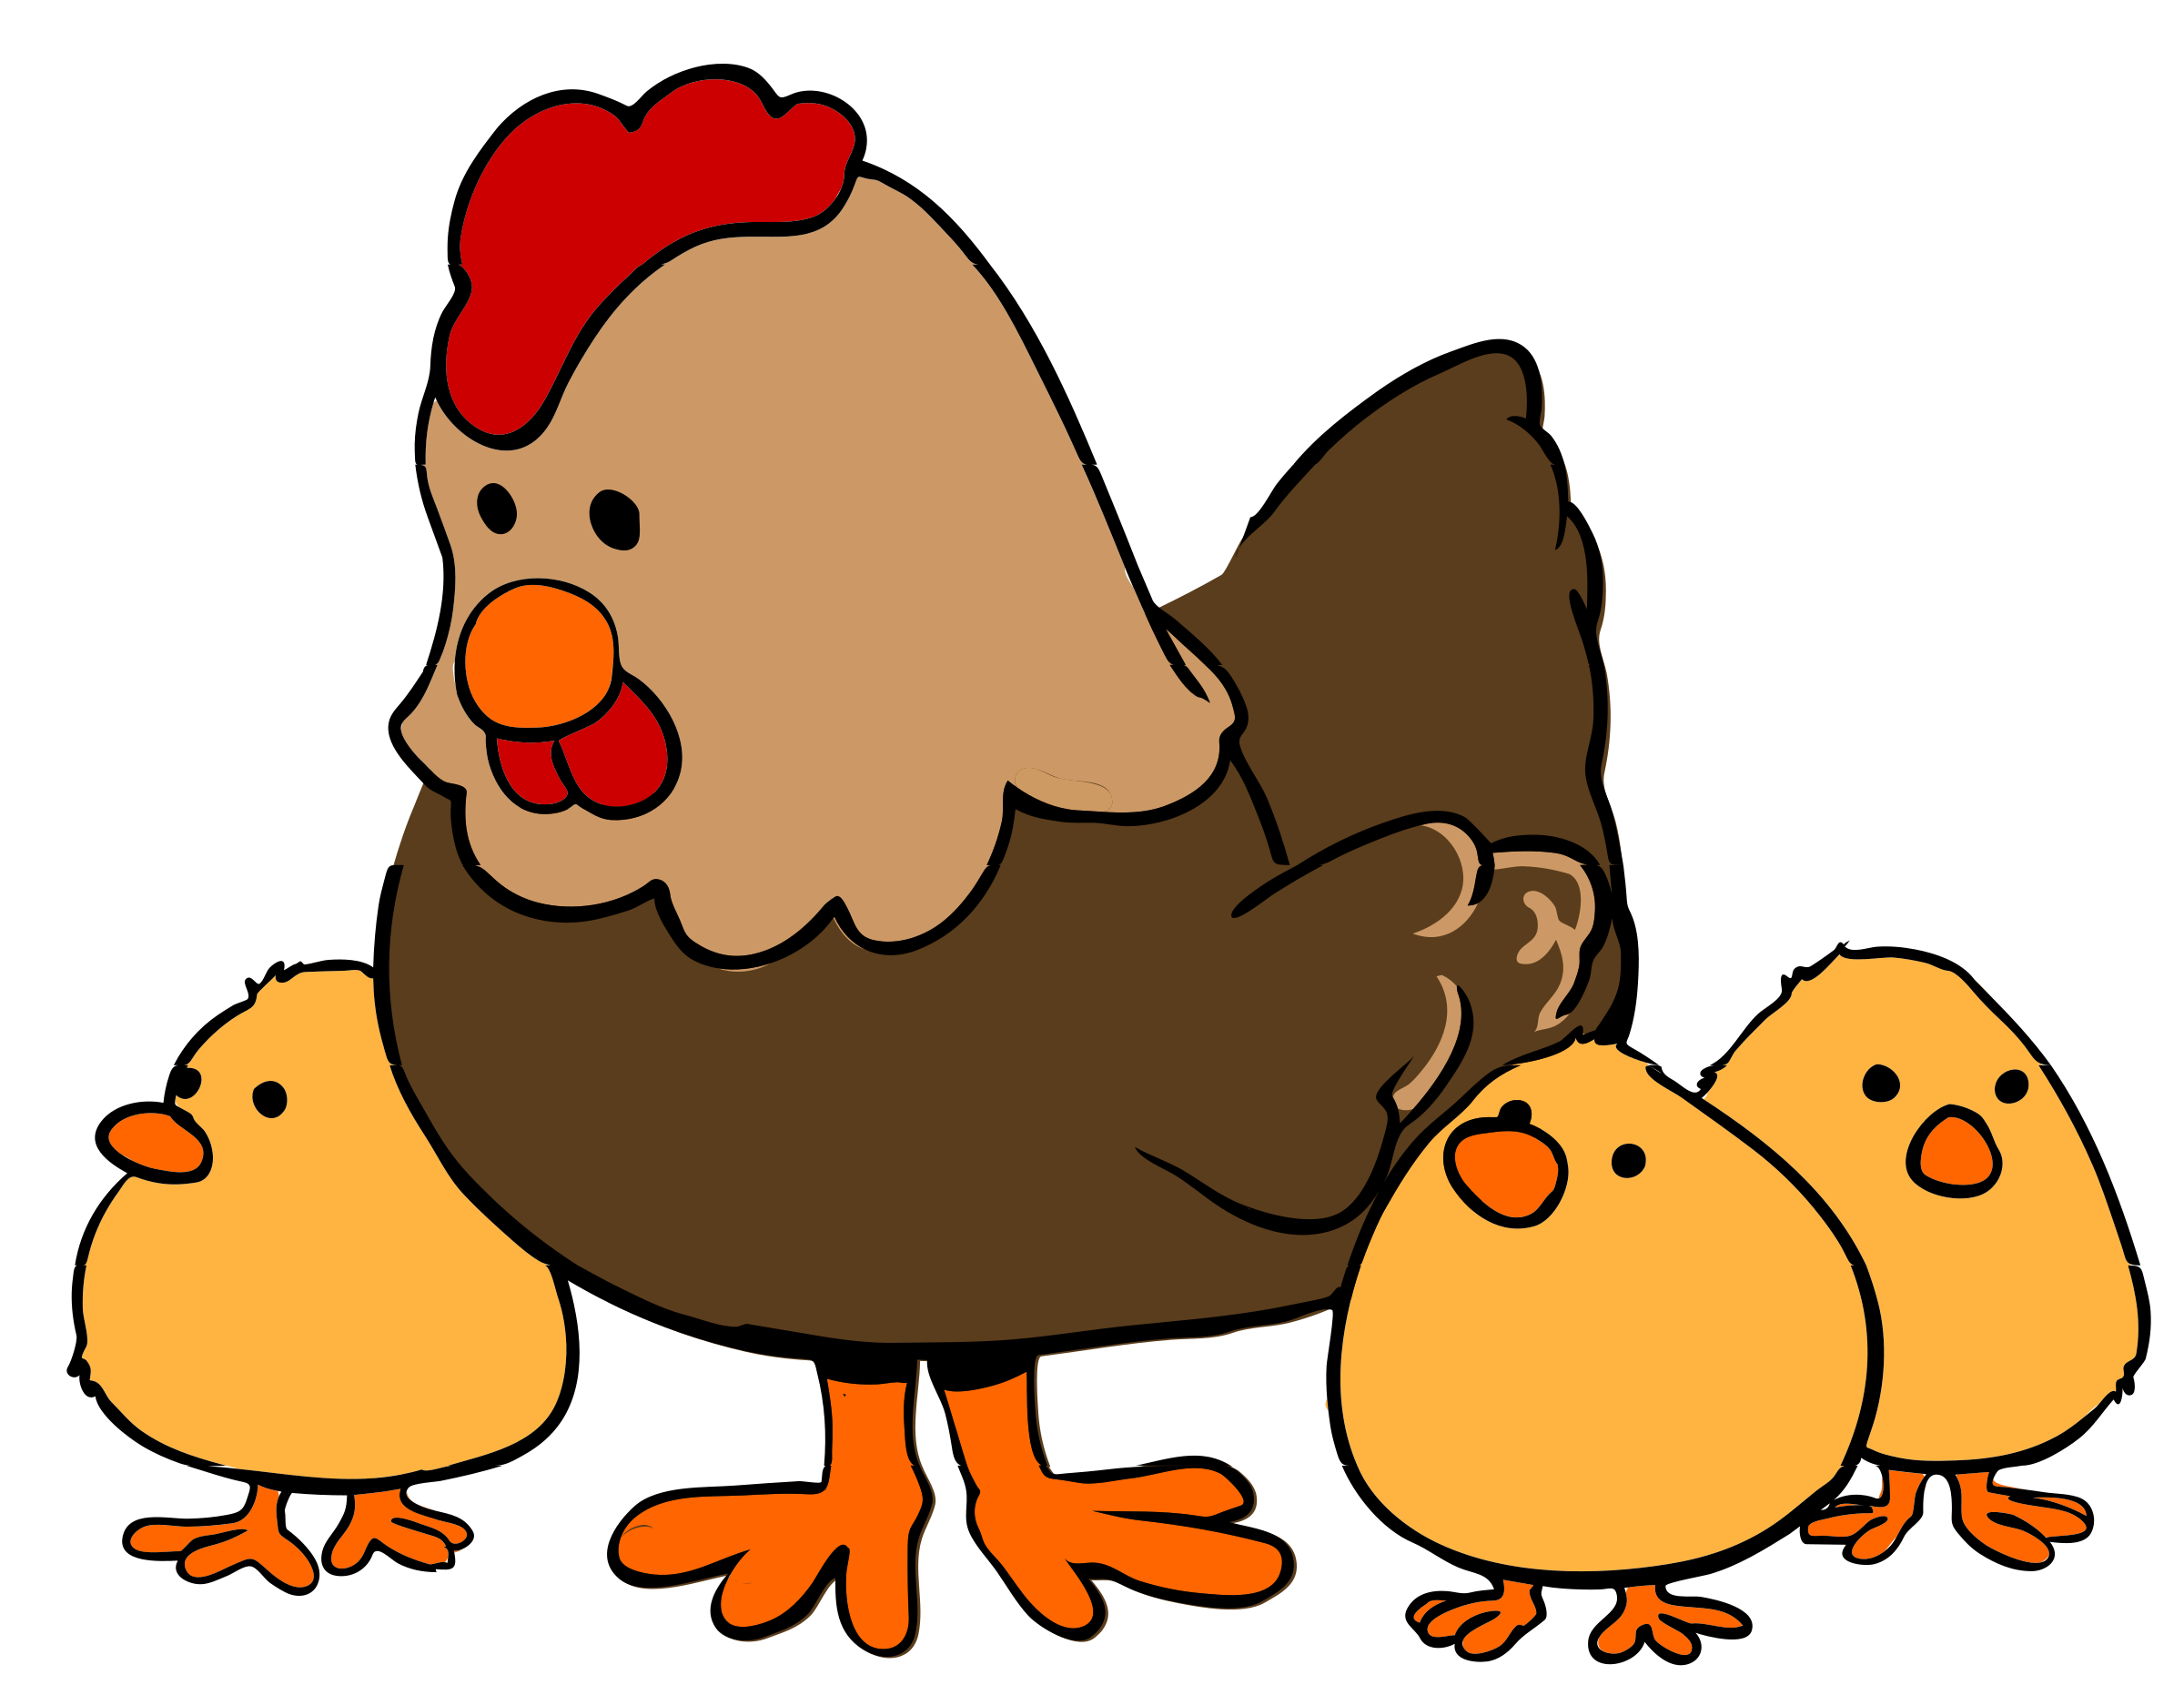 graphic freeuse stock Chickens clipart roasted chicken. Hen and chicks cartoon.